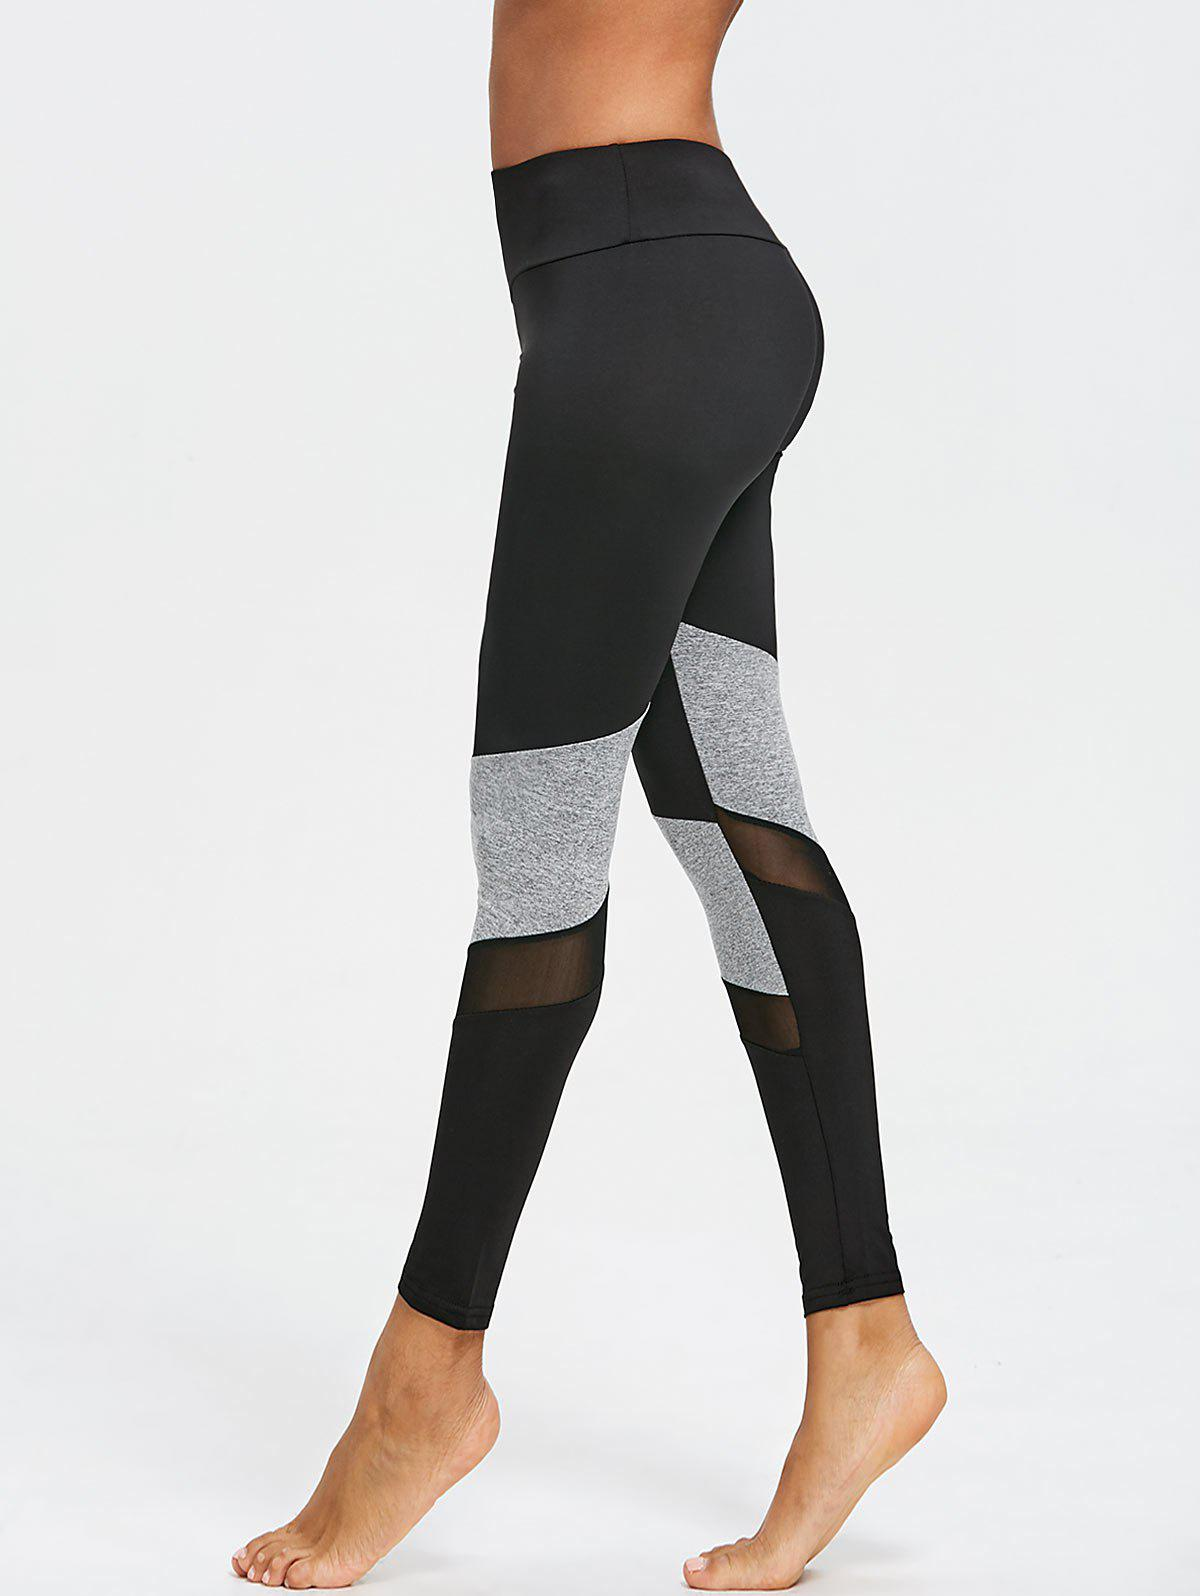 Two Tone Mesh Insert Capri Leggings - BLACK/GREY L